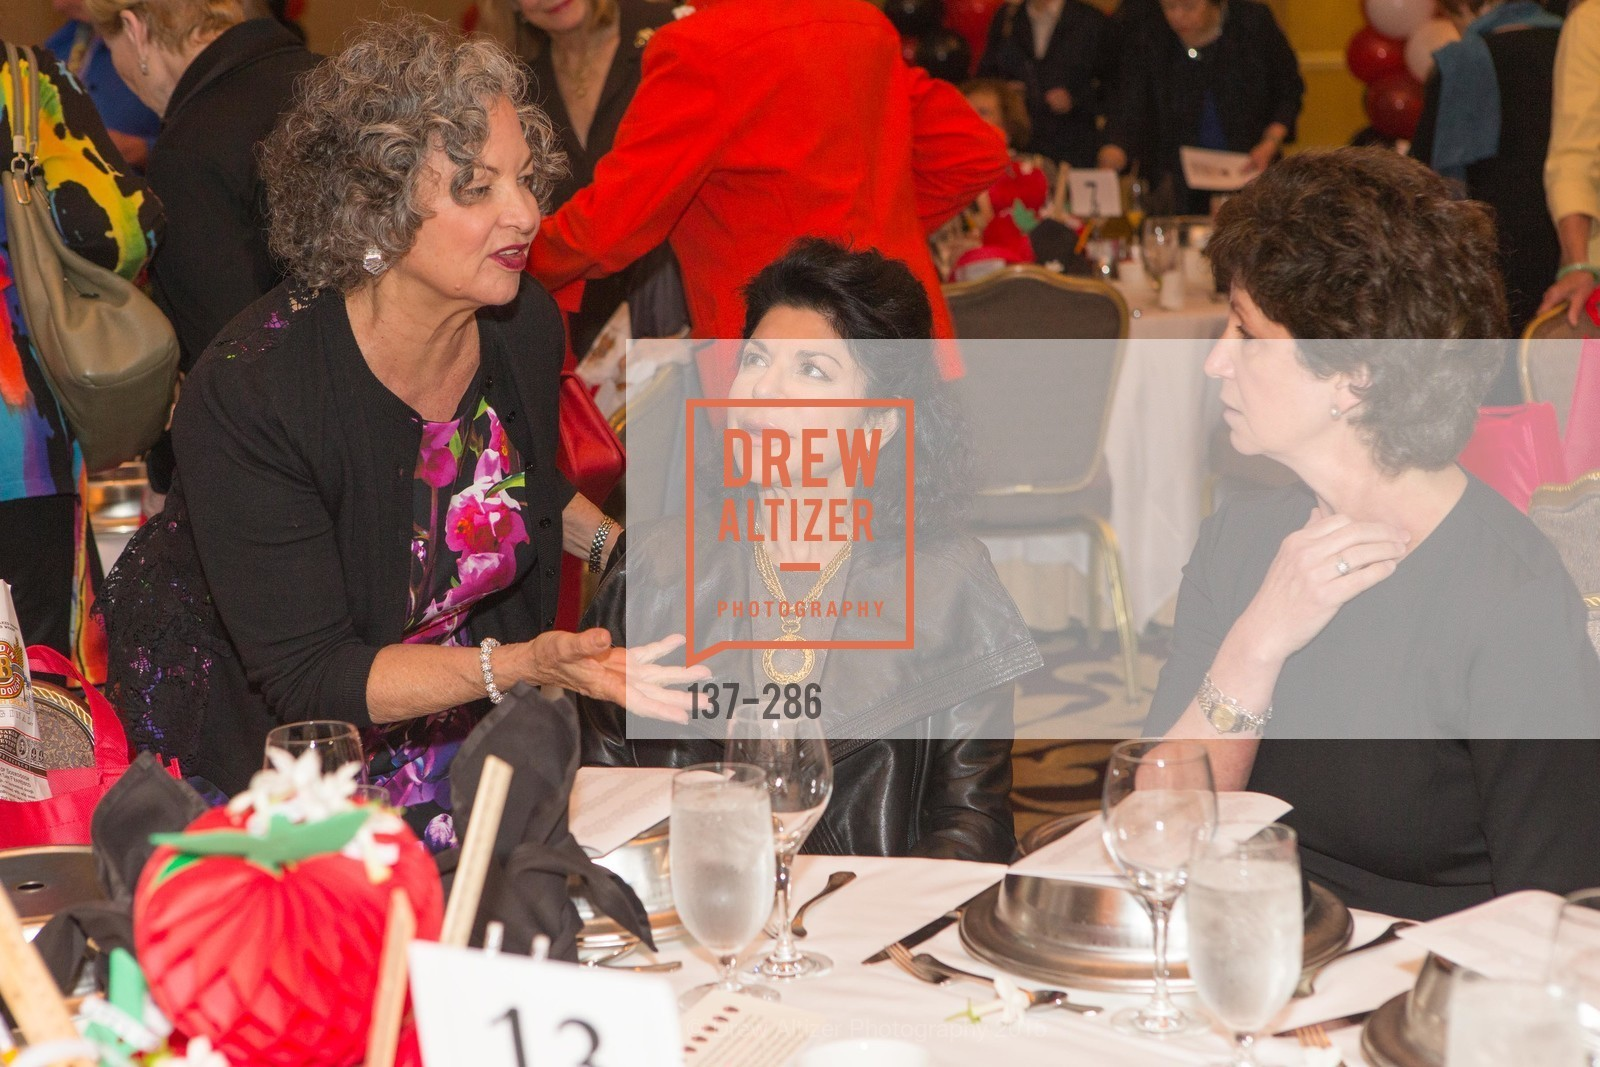 Extras, CCSF Basic Skills Luncheon, September 15th, 2015, Photo,Drew Altizer, Drew Altizer Photography, full-service agency, private events, San Francisco photographer, photographer california